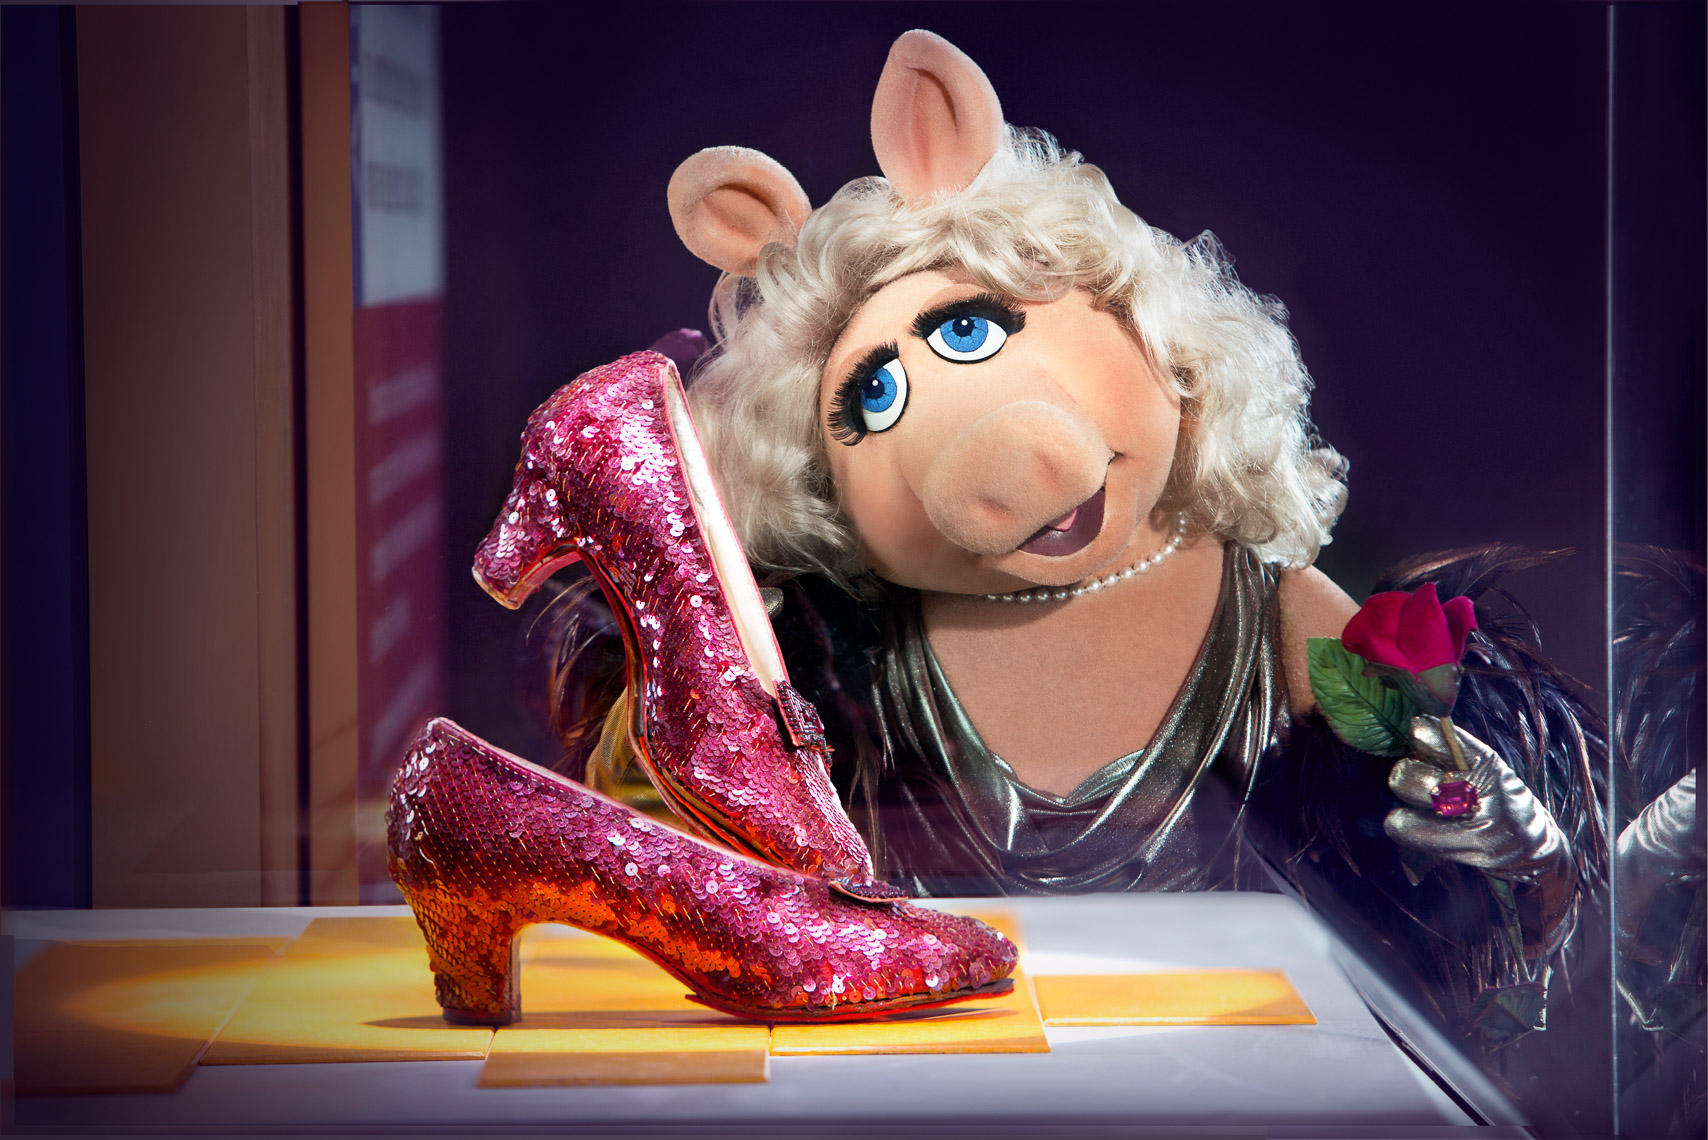 Piggy Ruby Slippers